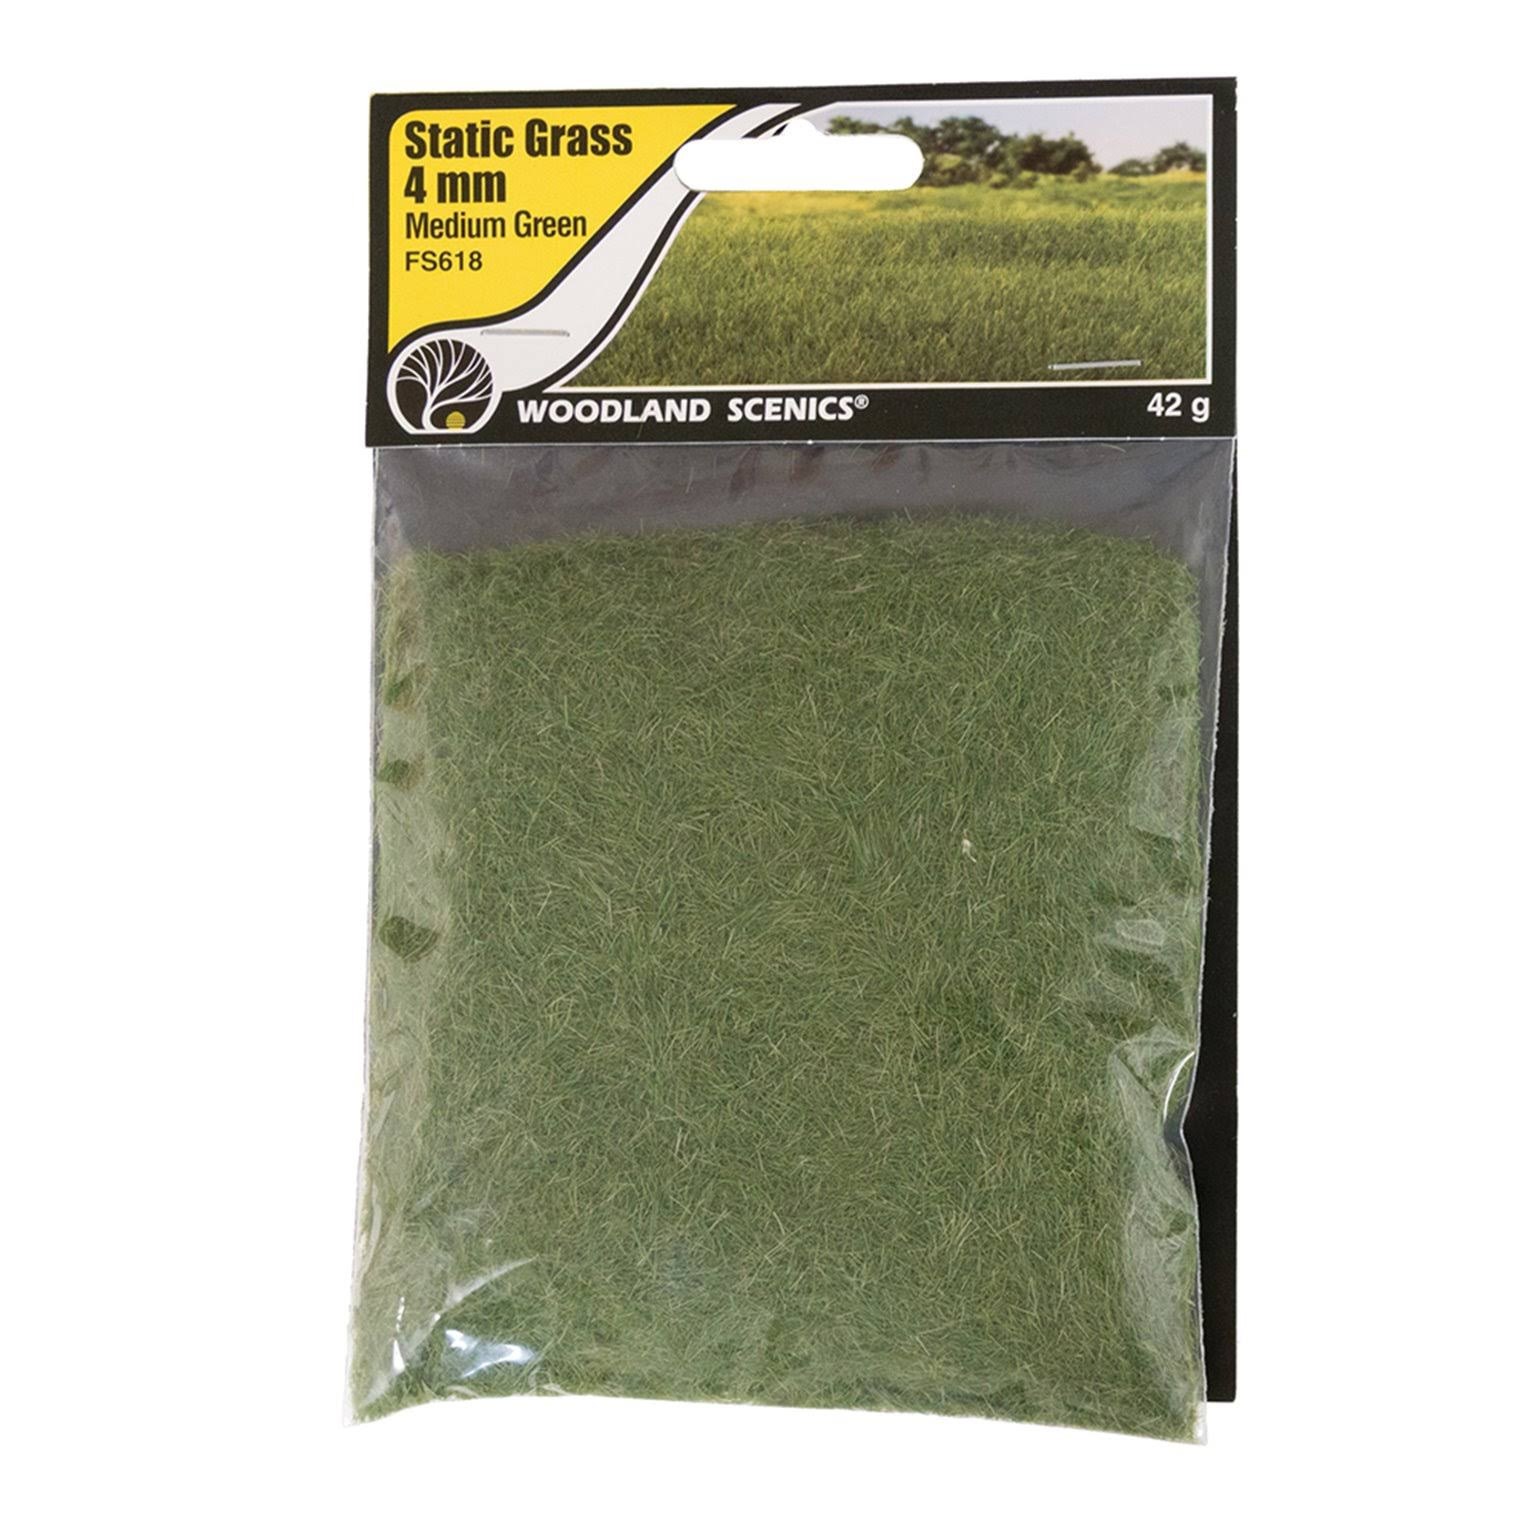 Woodland Scenics Static Grass Medium Green 4mm